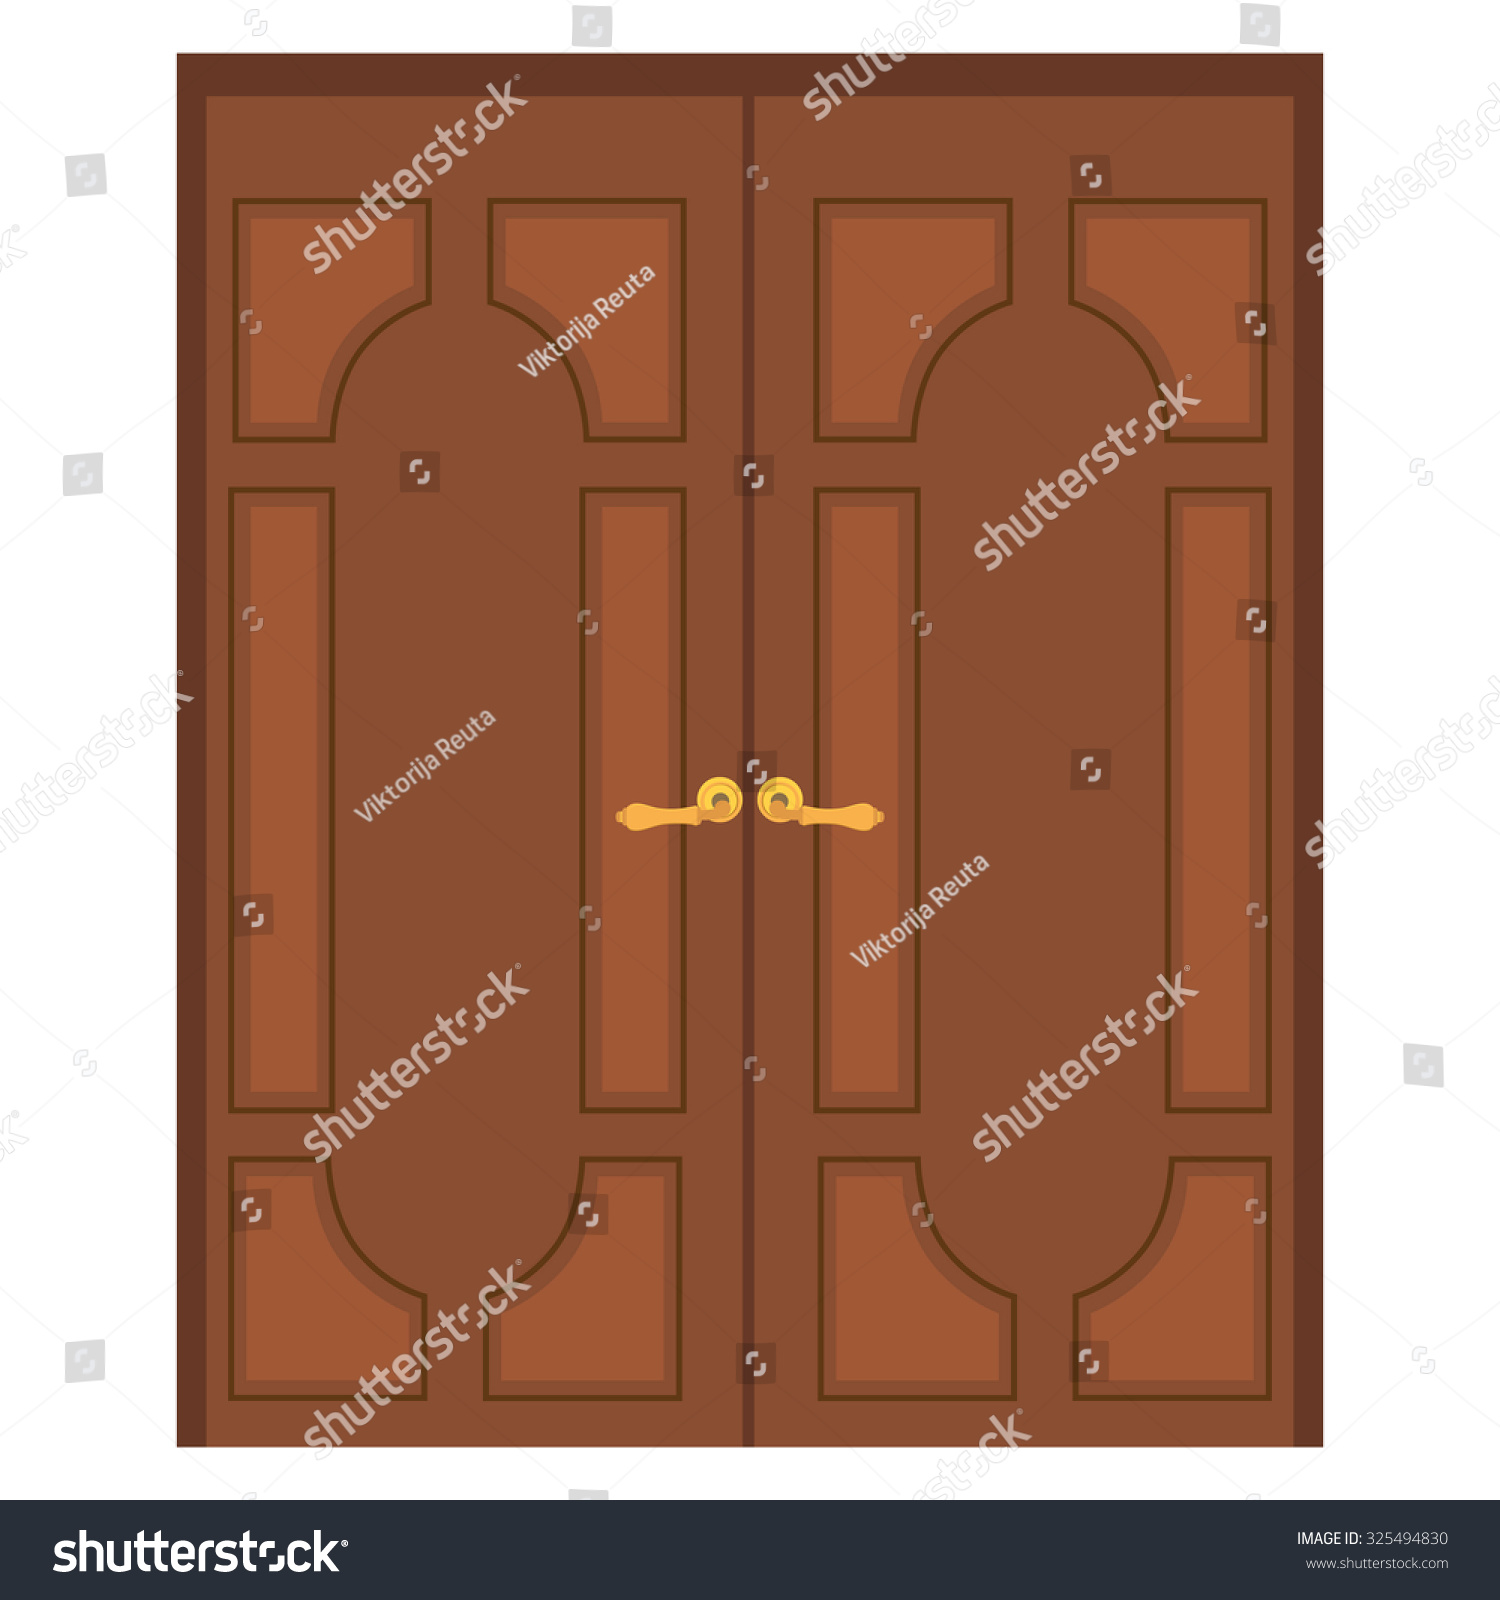 Raster Illustration Old Wooden Double Door Stock Illustration ...